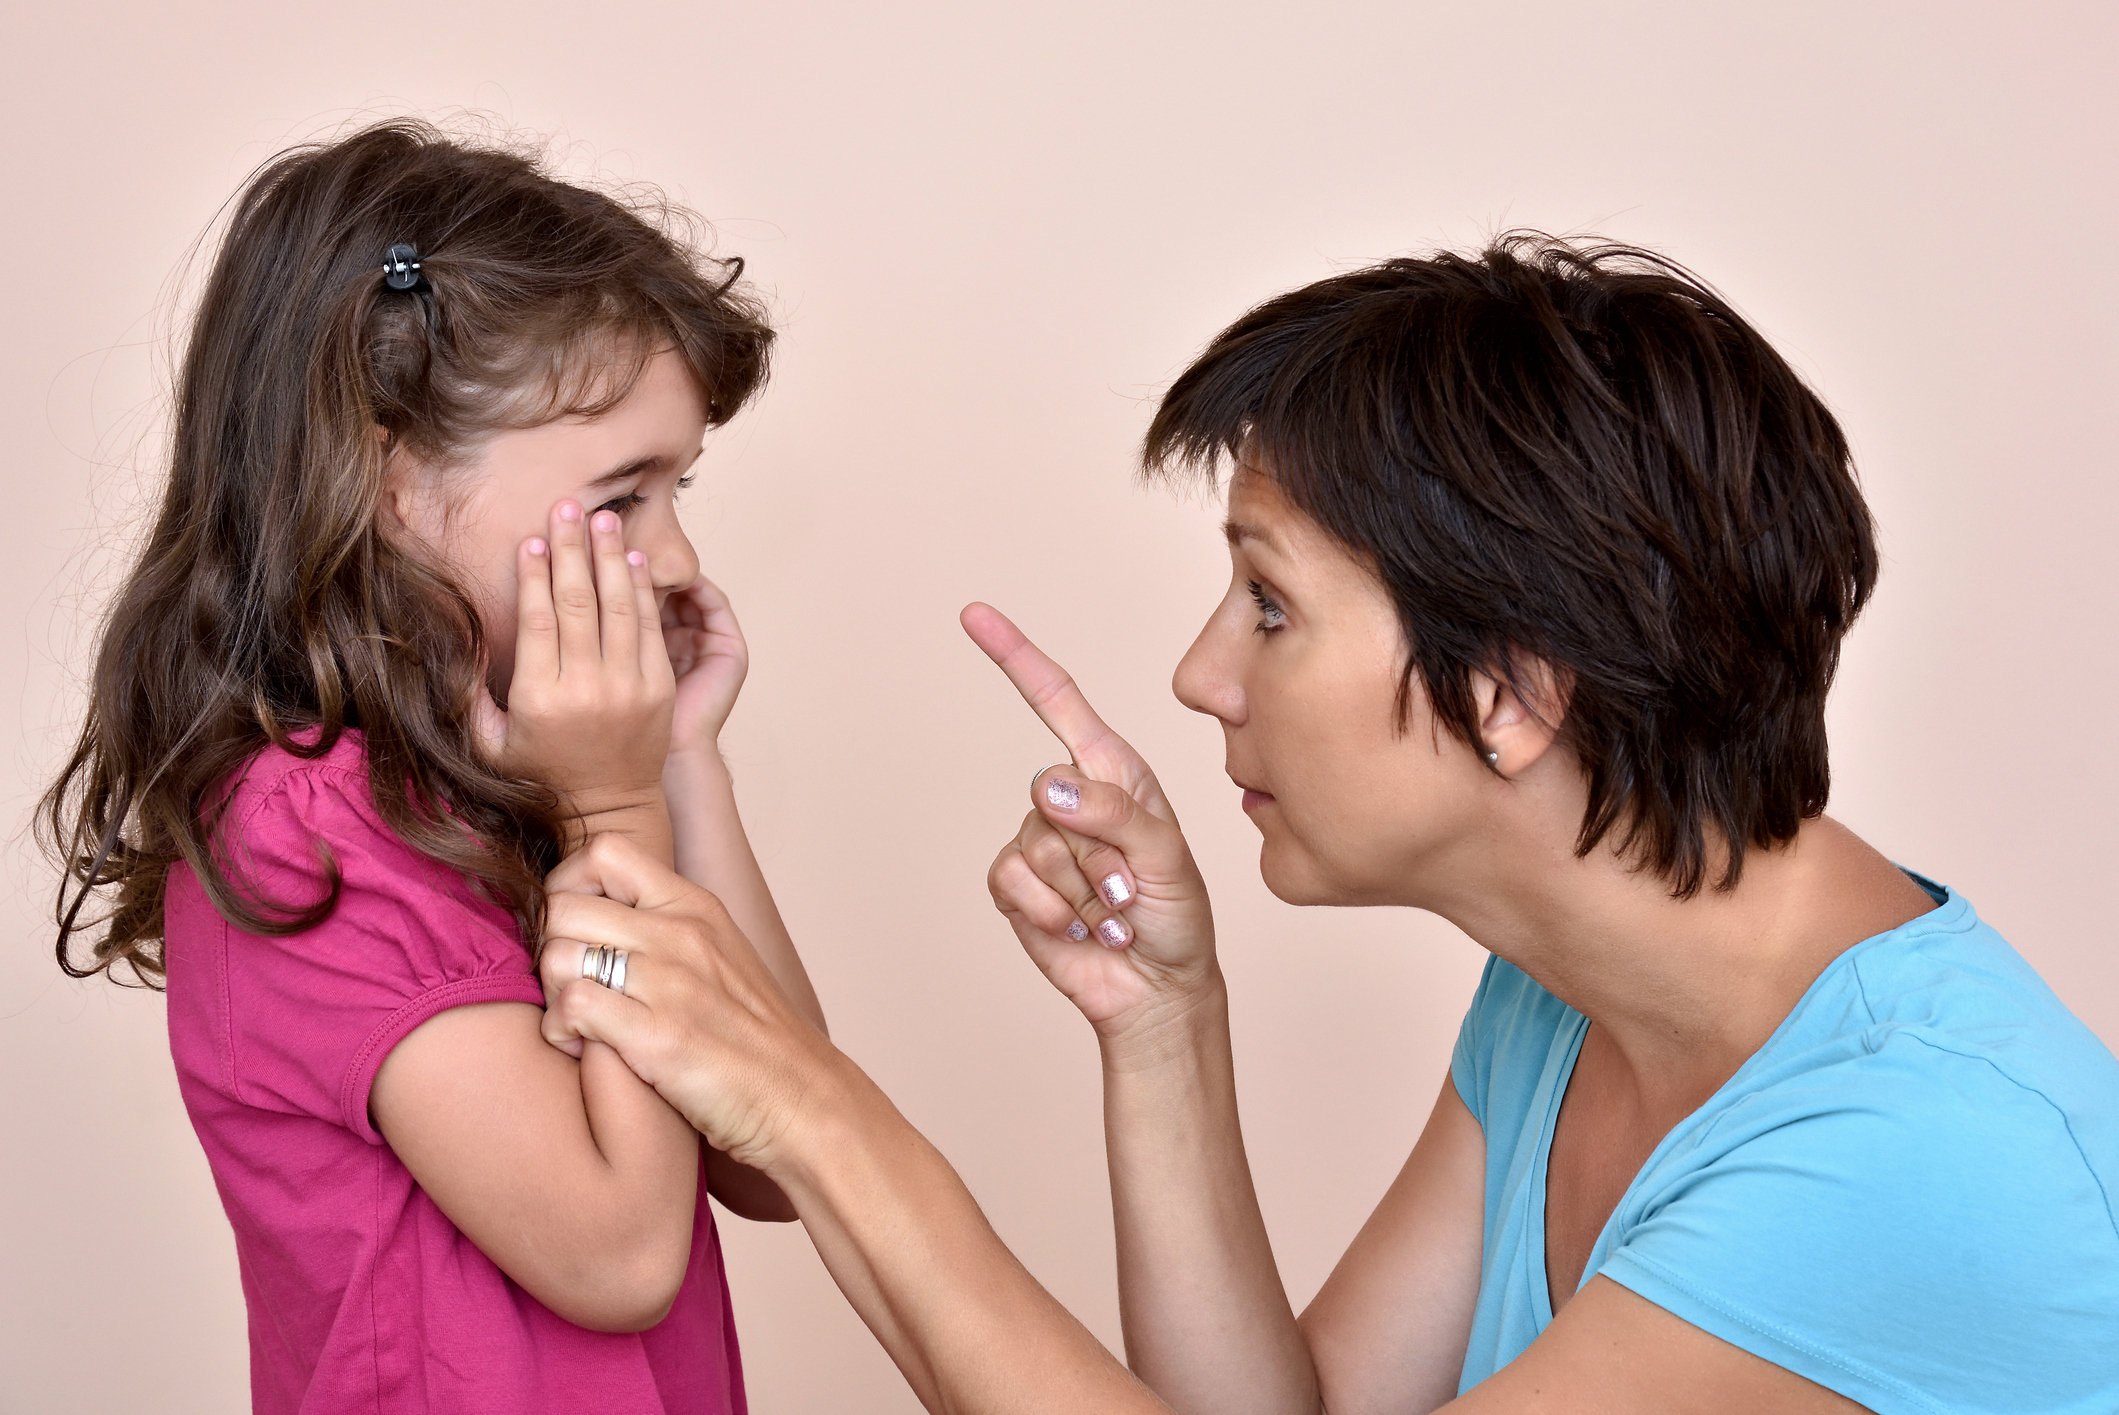 Parents must stop publicly smacking and humiliating their